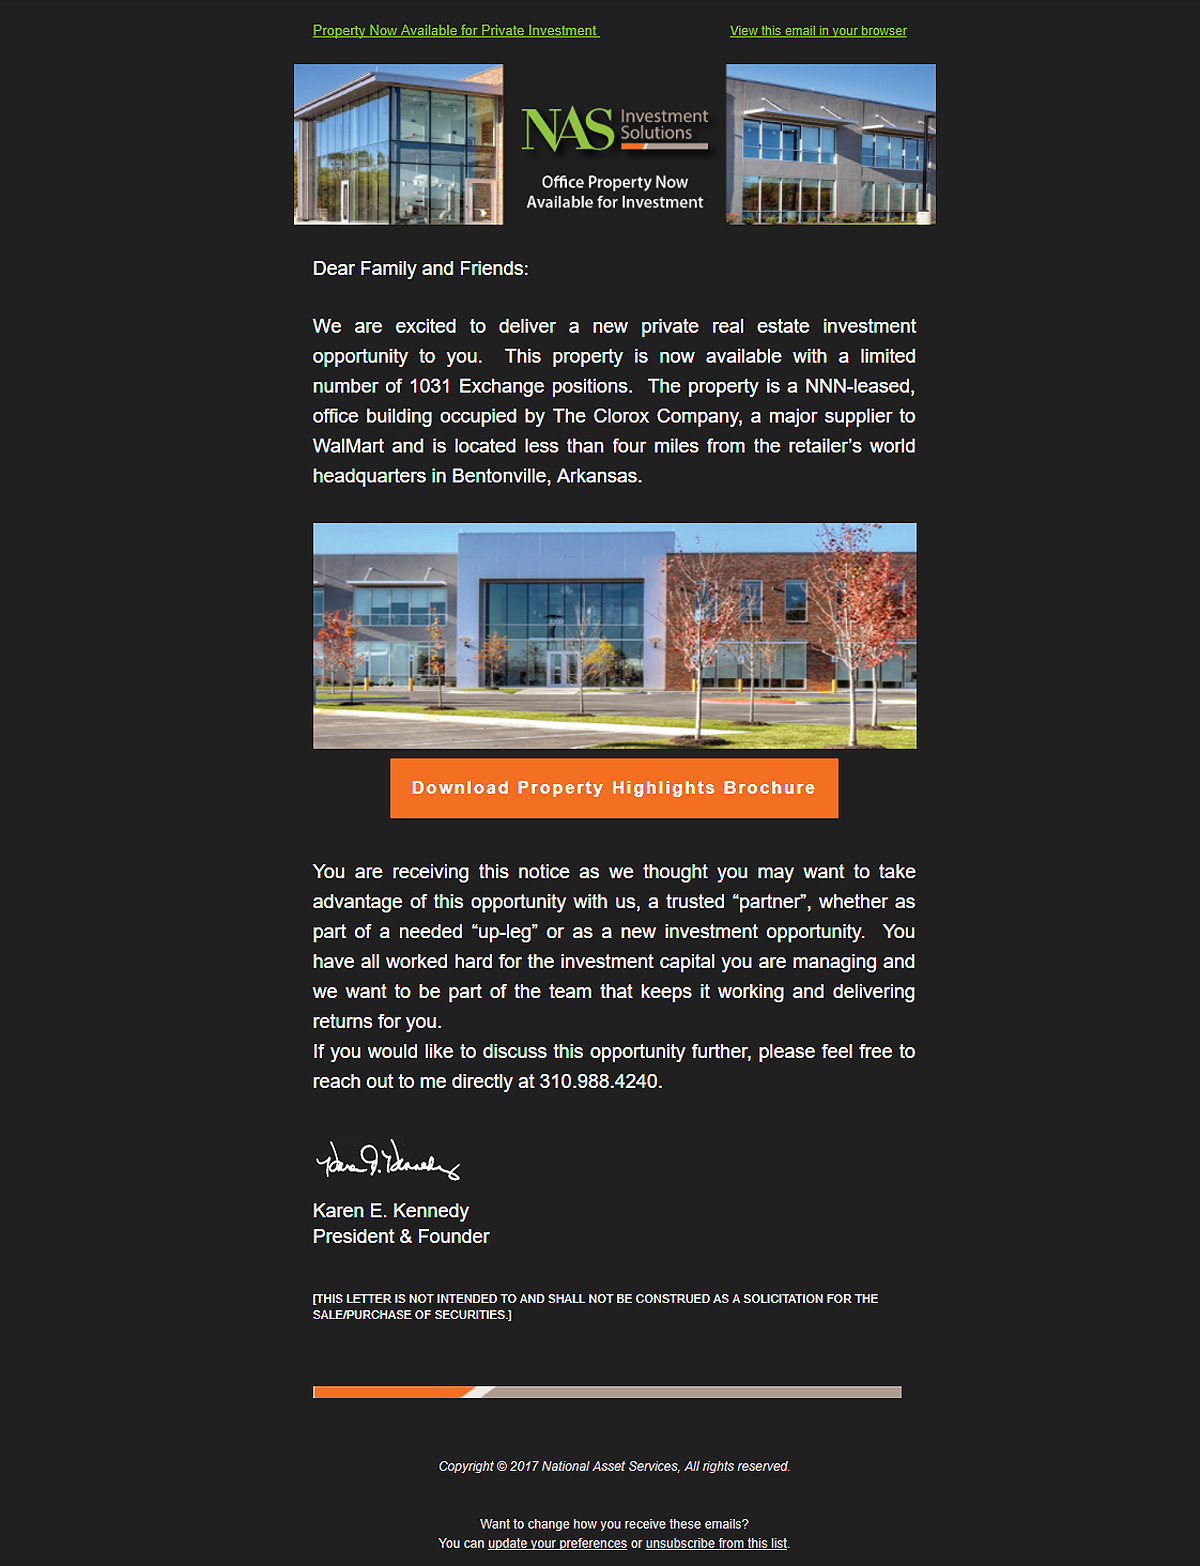 NASIS Email Marketing Campaign